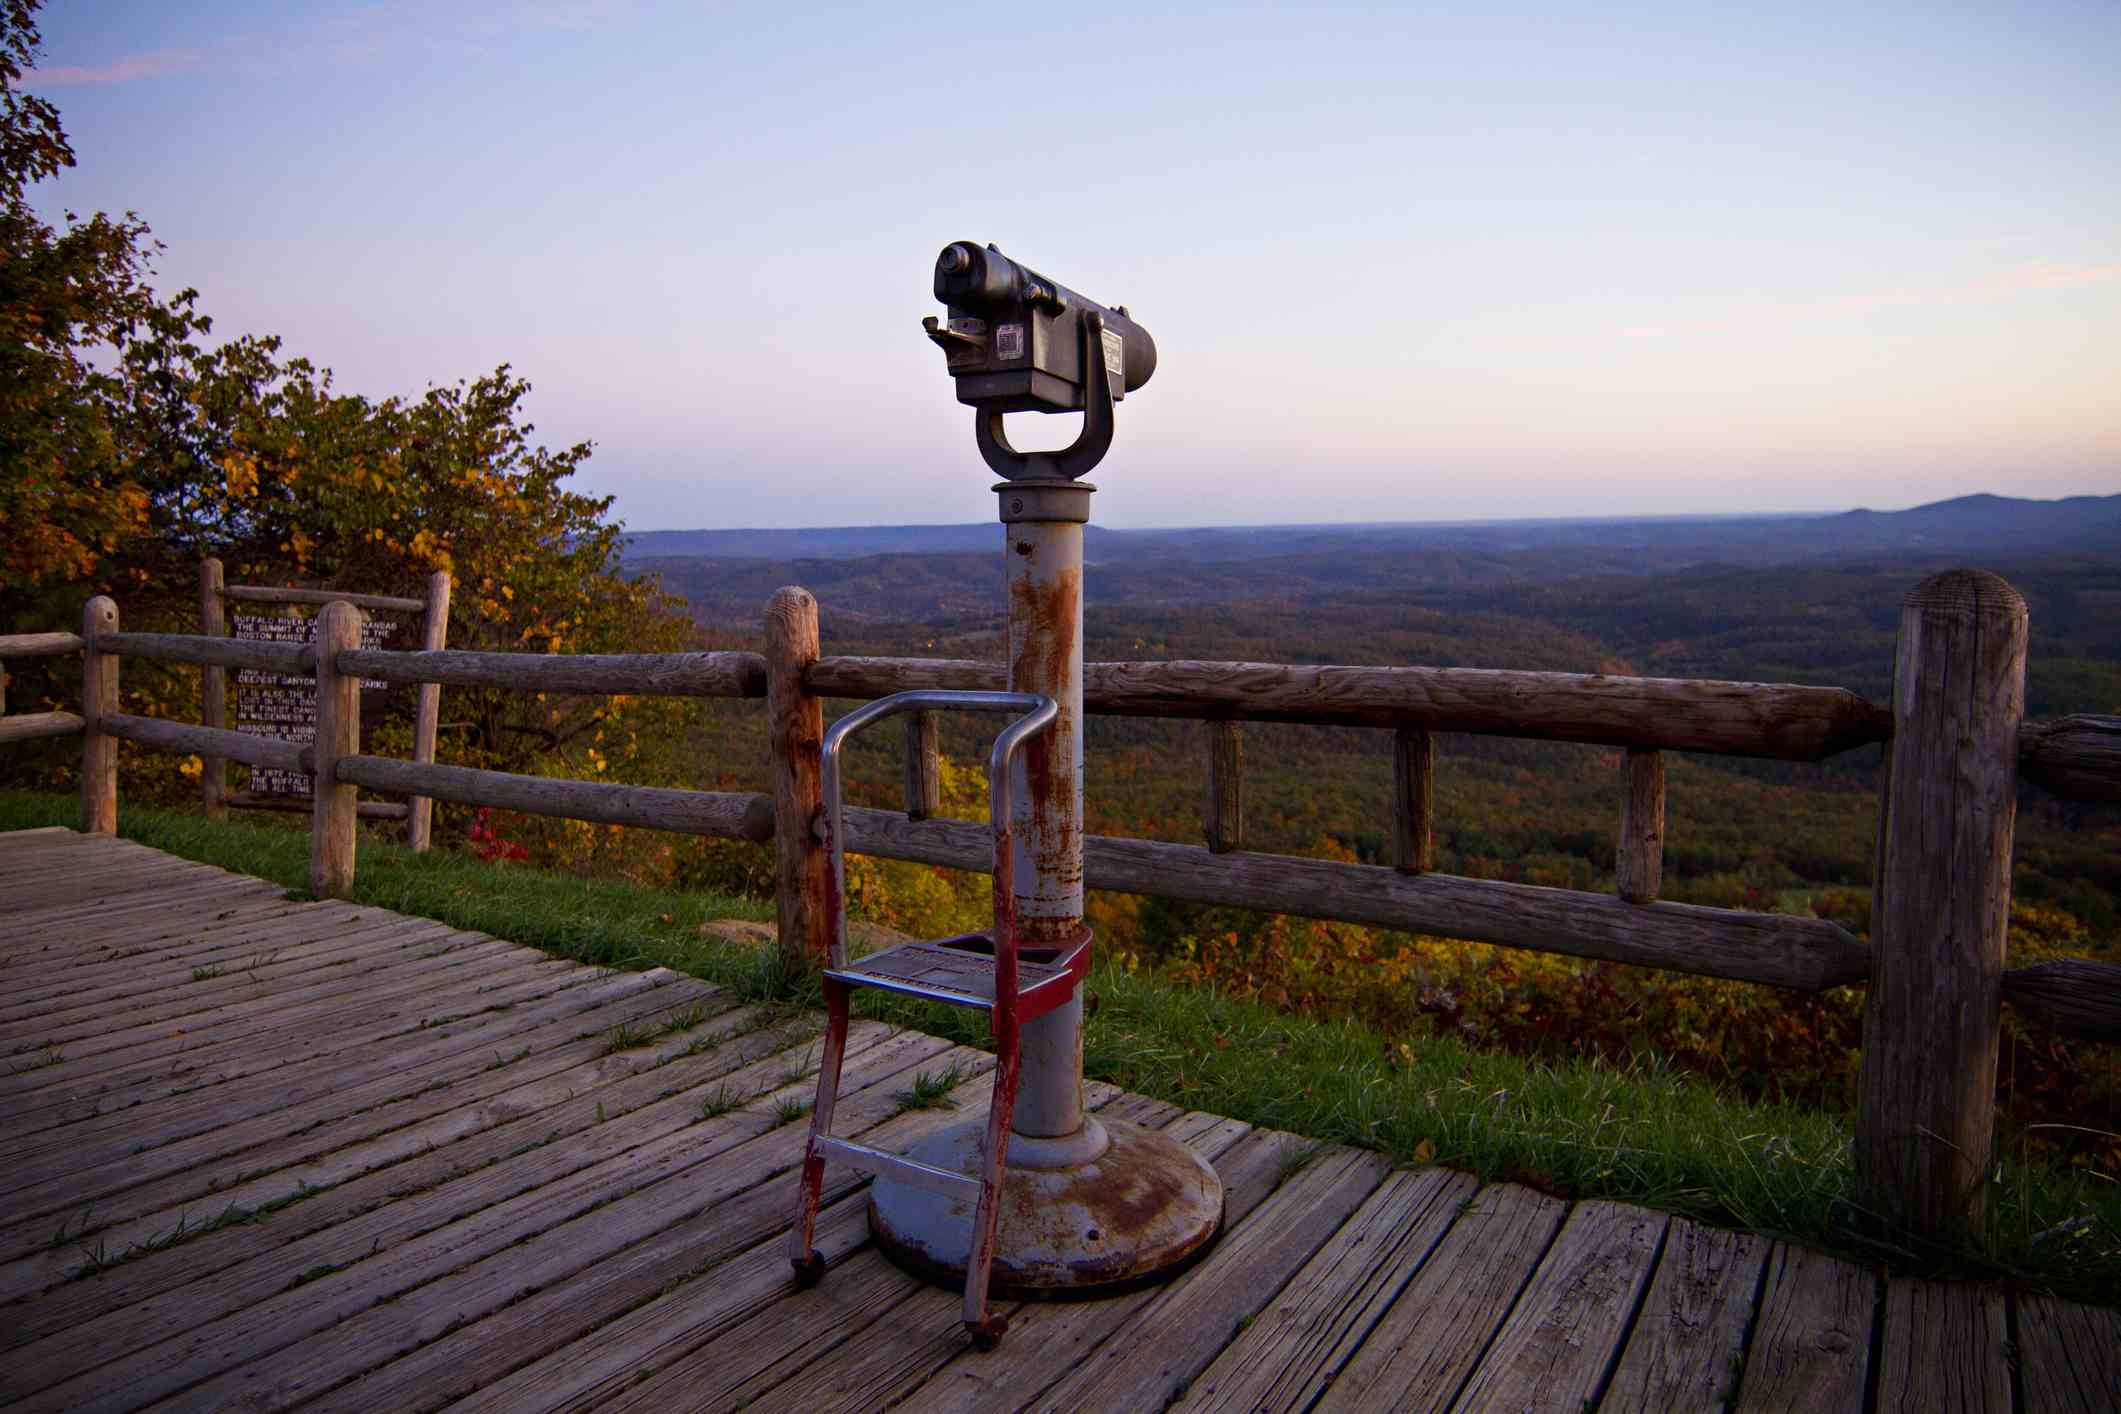 Coin-operated telescope at a Highway 7 in the Ozark Mountains of Arkansas.